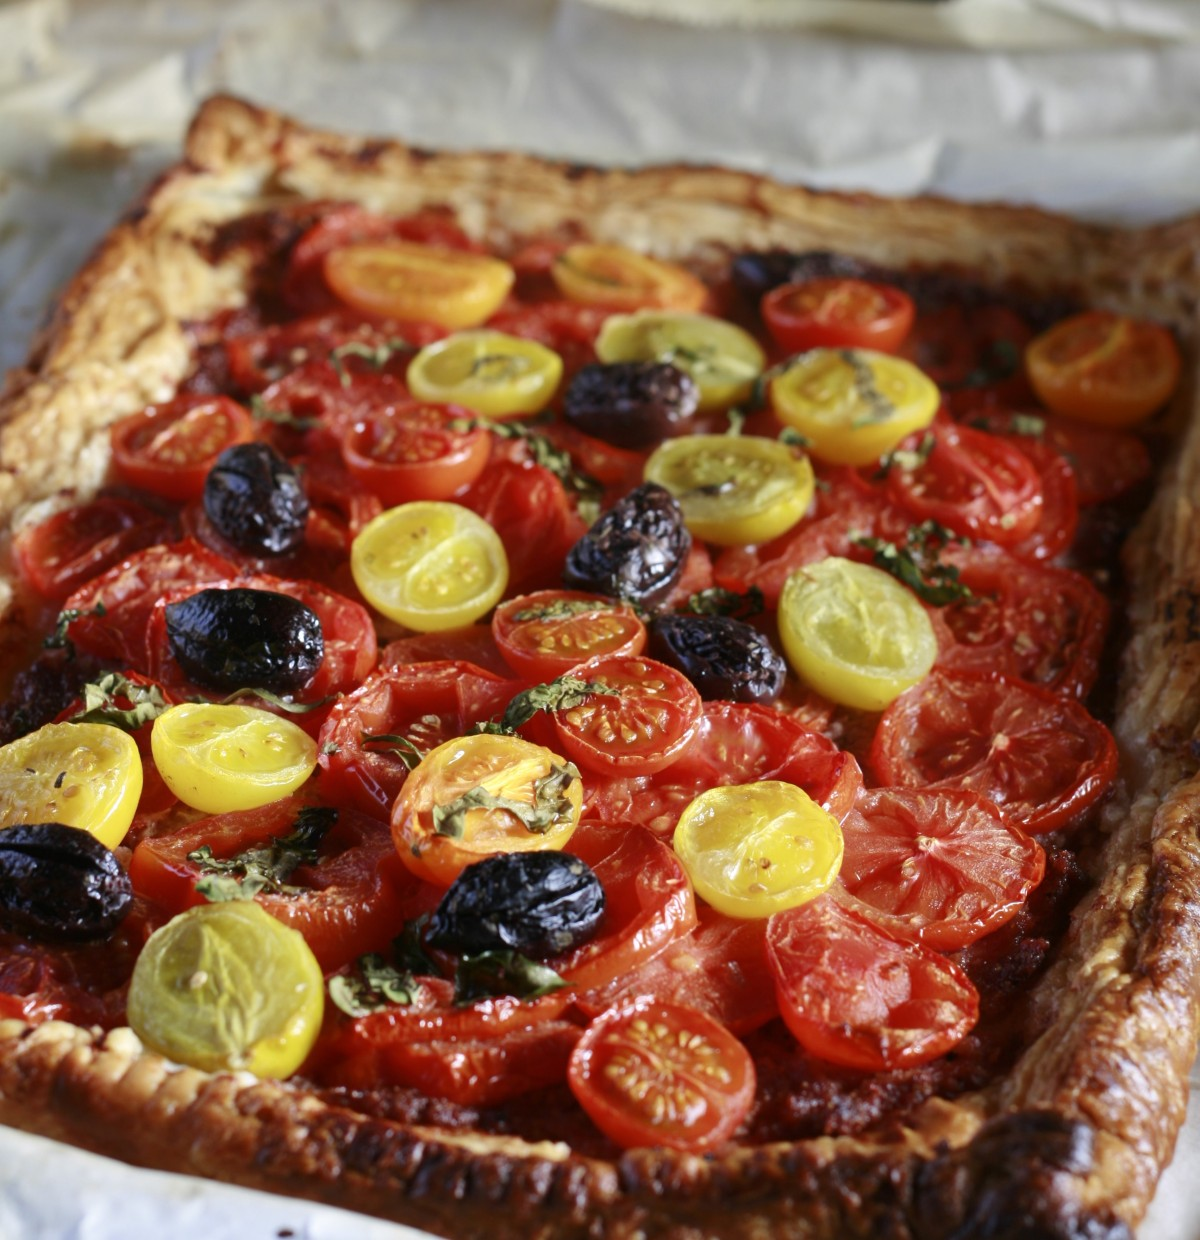 Baked Tomato and Prosciutto Tart with basil and olives.